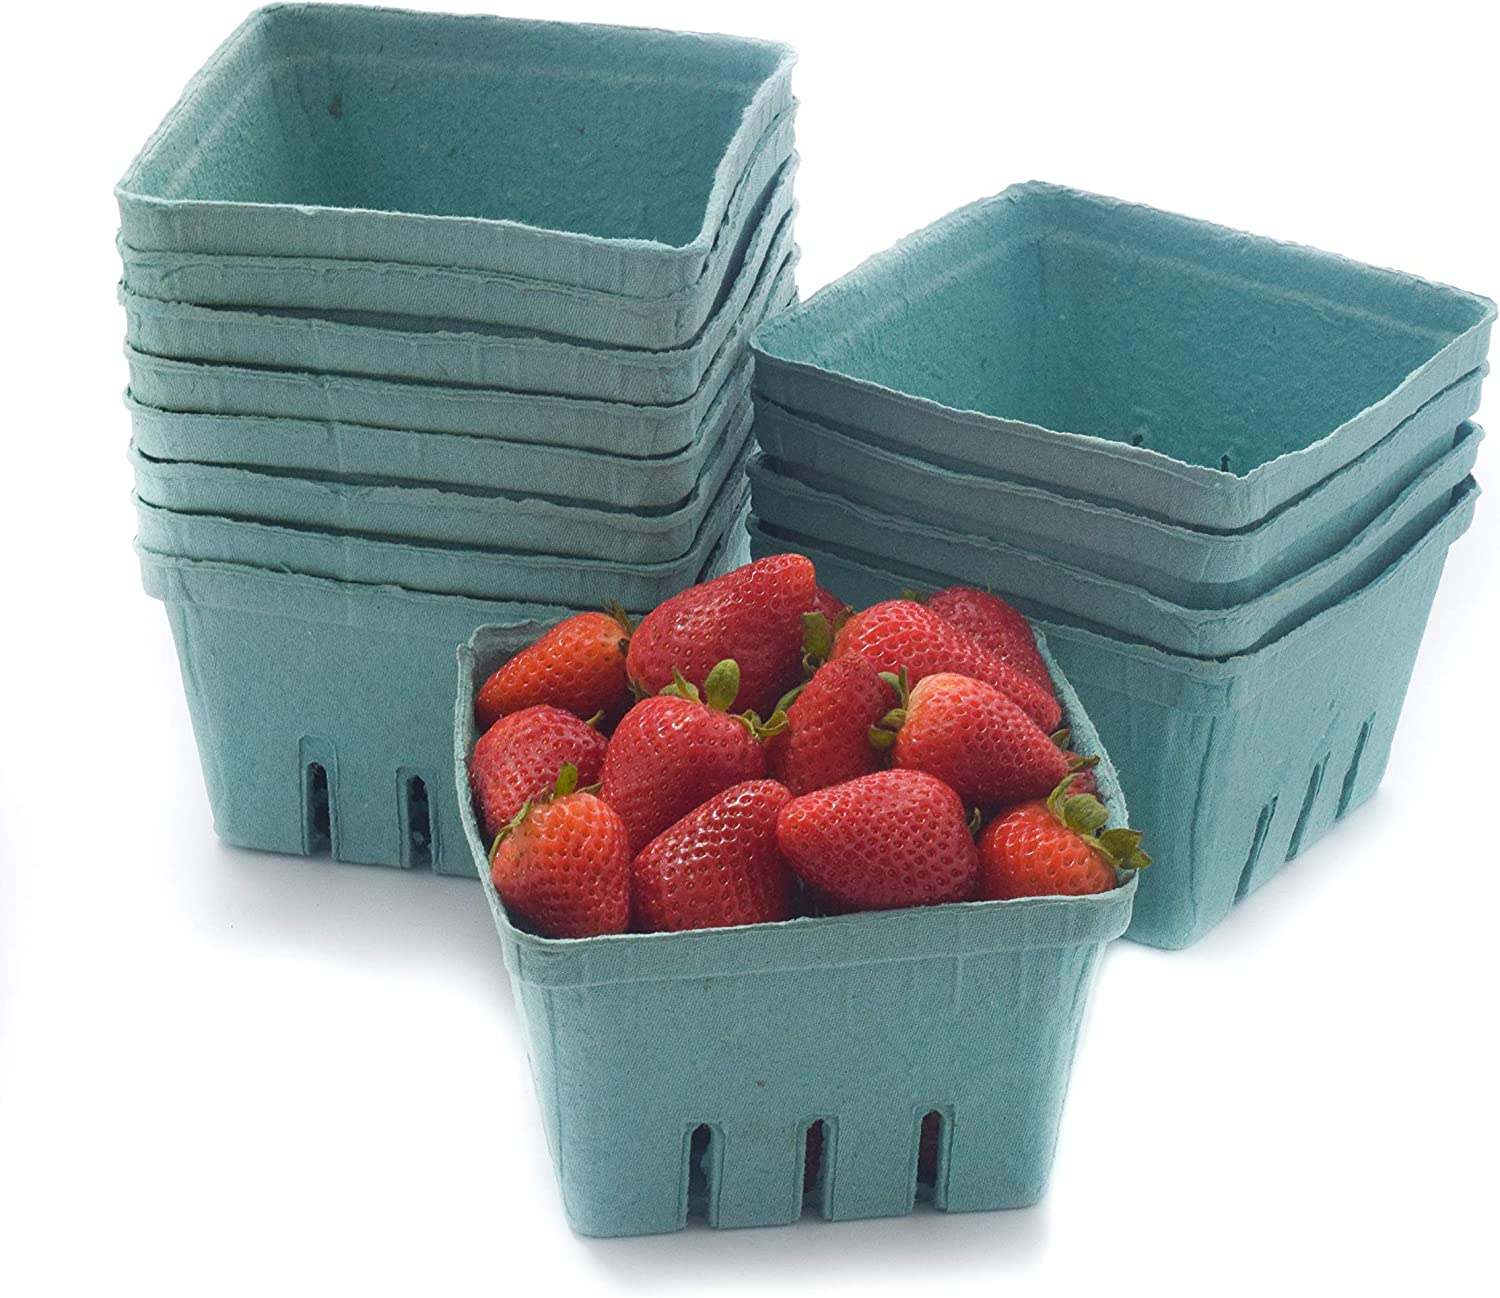 42 Pack QUART Green Molded Pulp Fiber Berry/Produce Vented Baskets for Fruit and Vegetable